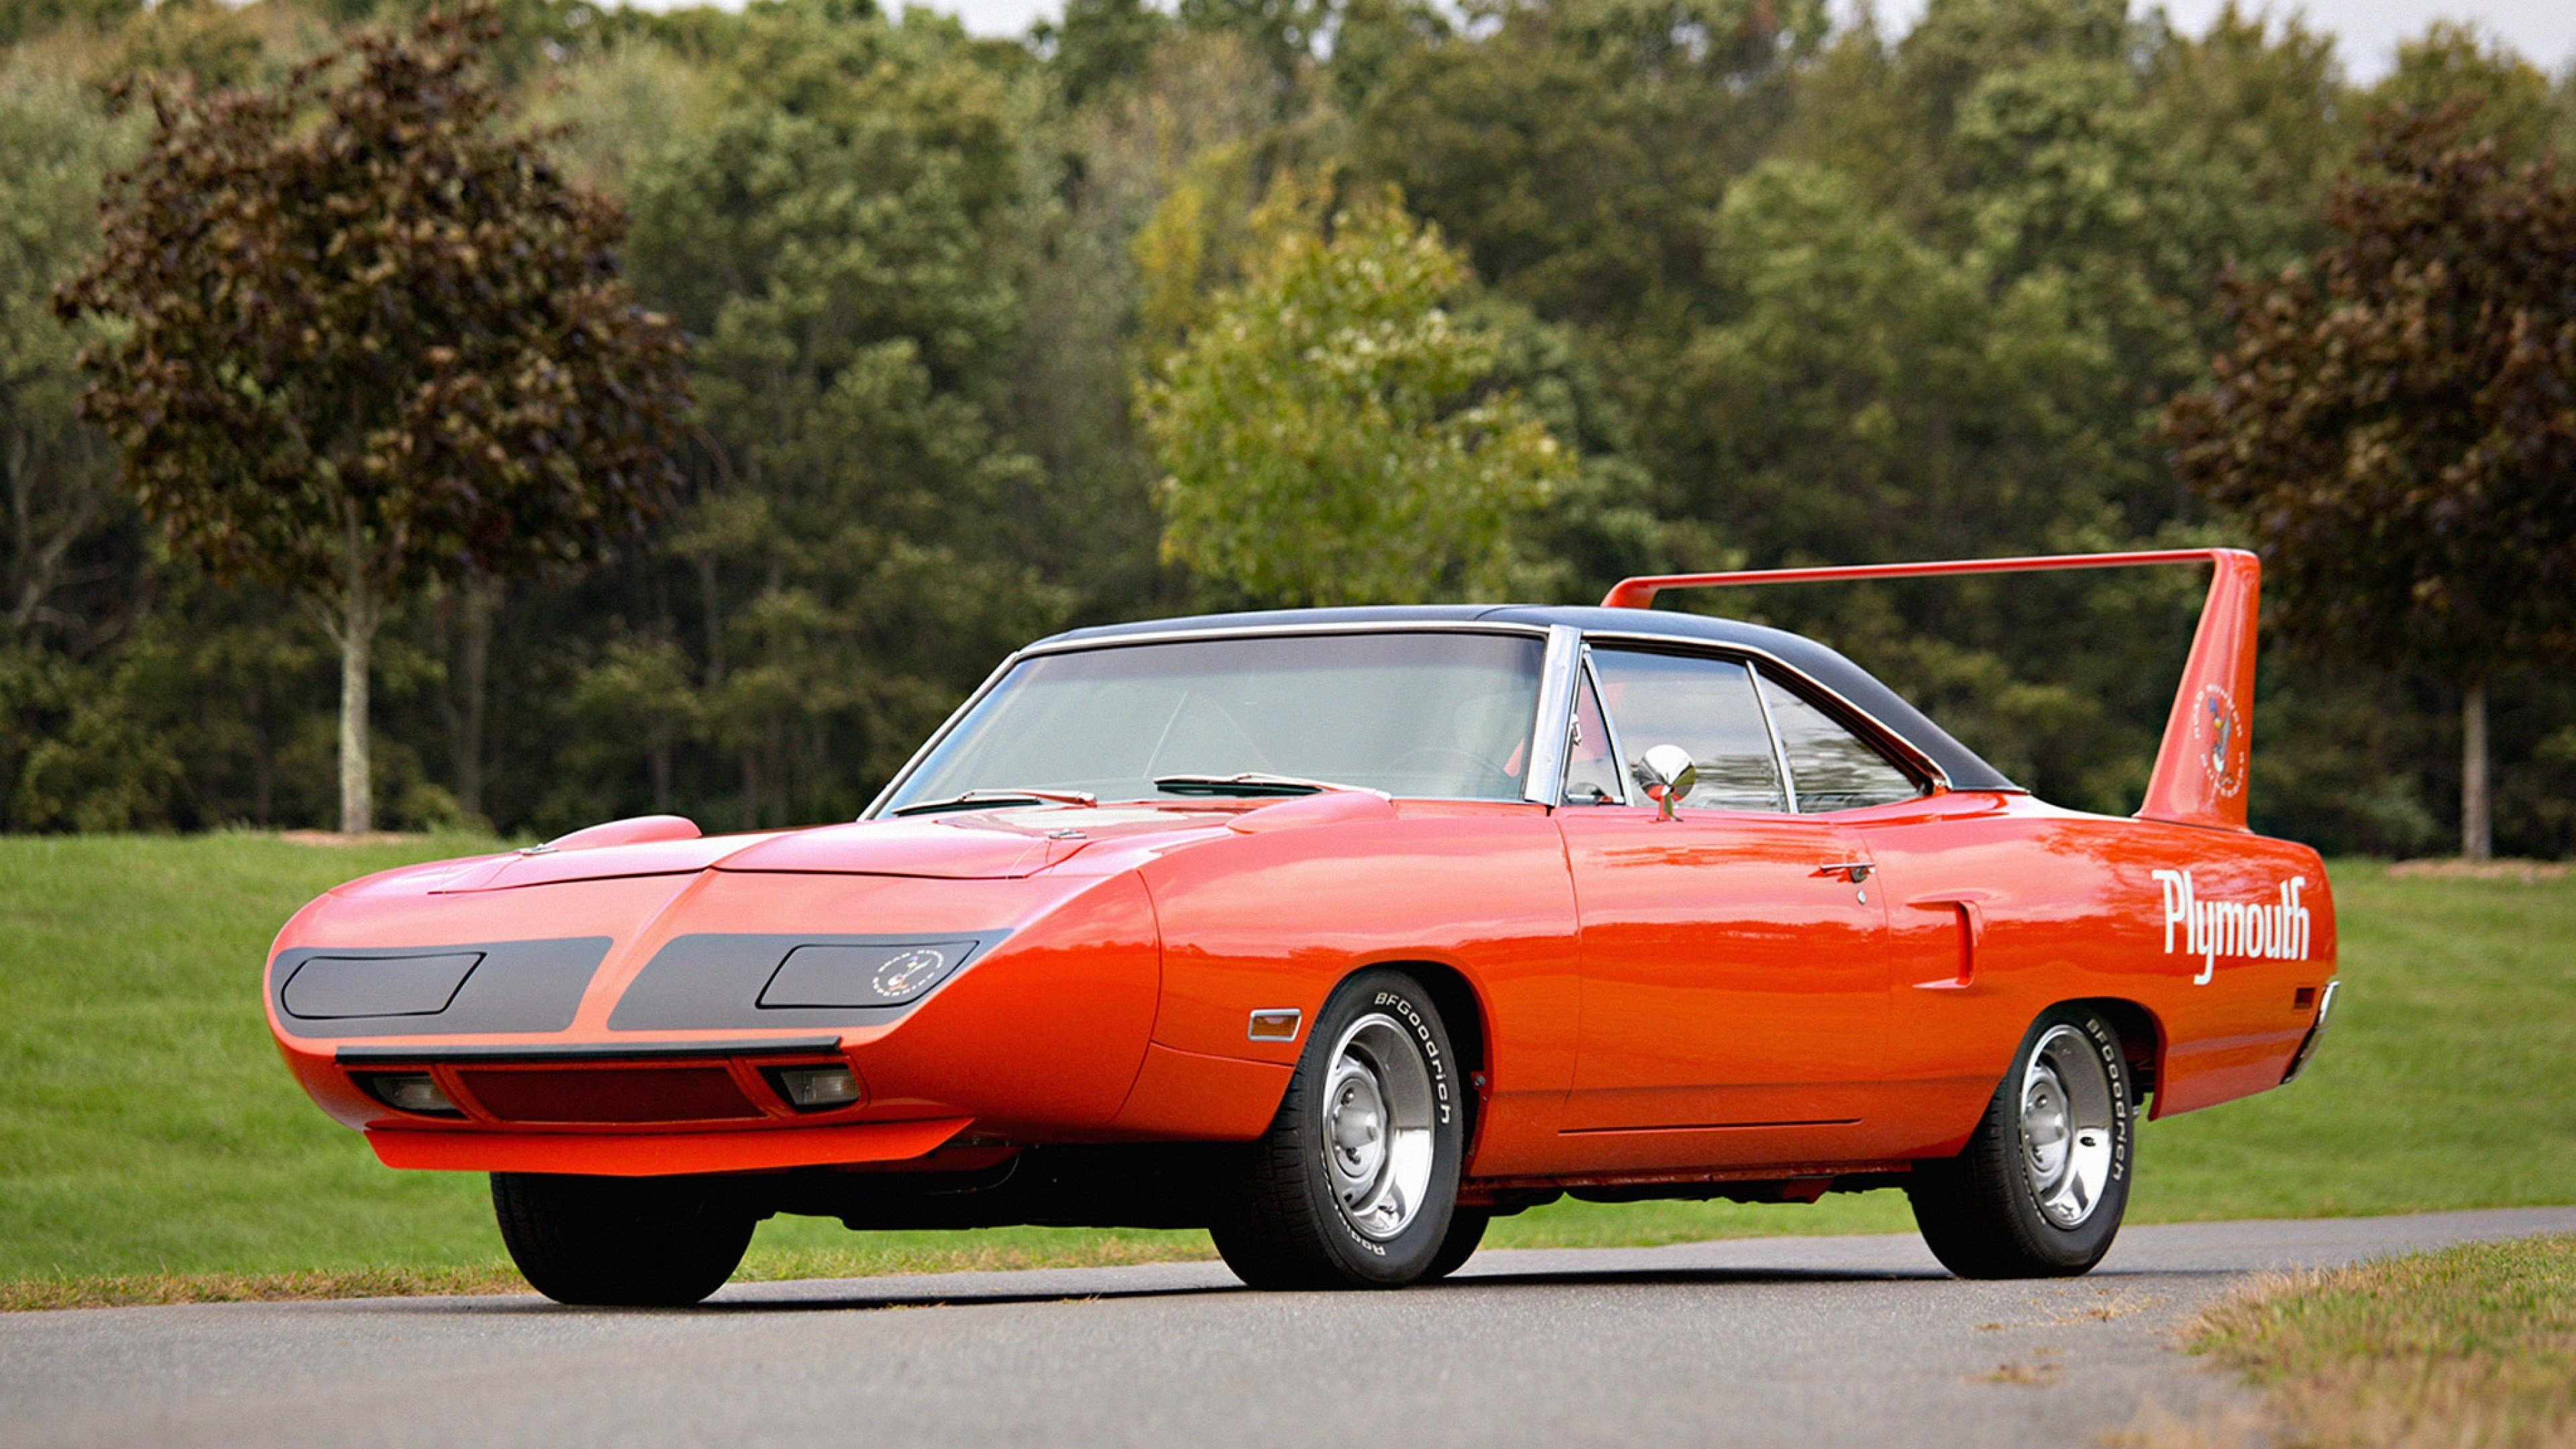 Latest Plymouth Superbird Wallpapers ·① Wallpapertag Free Download